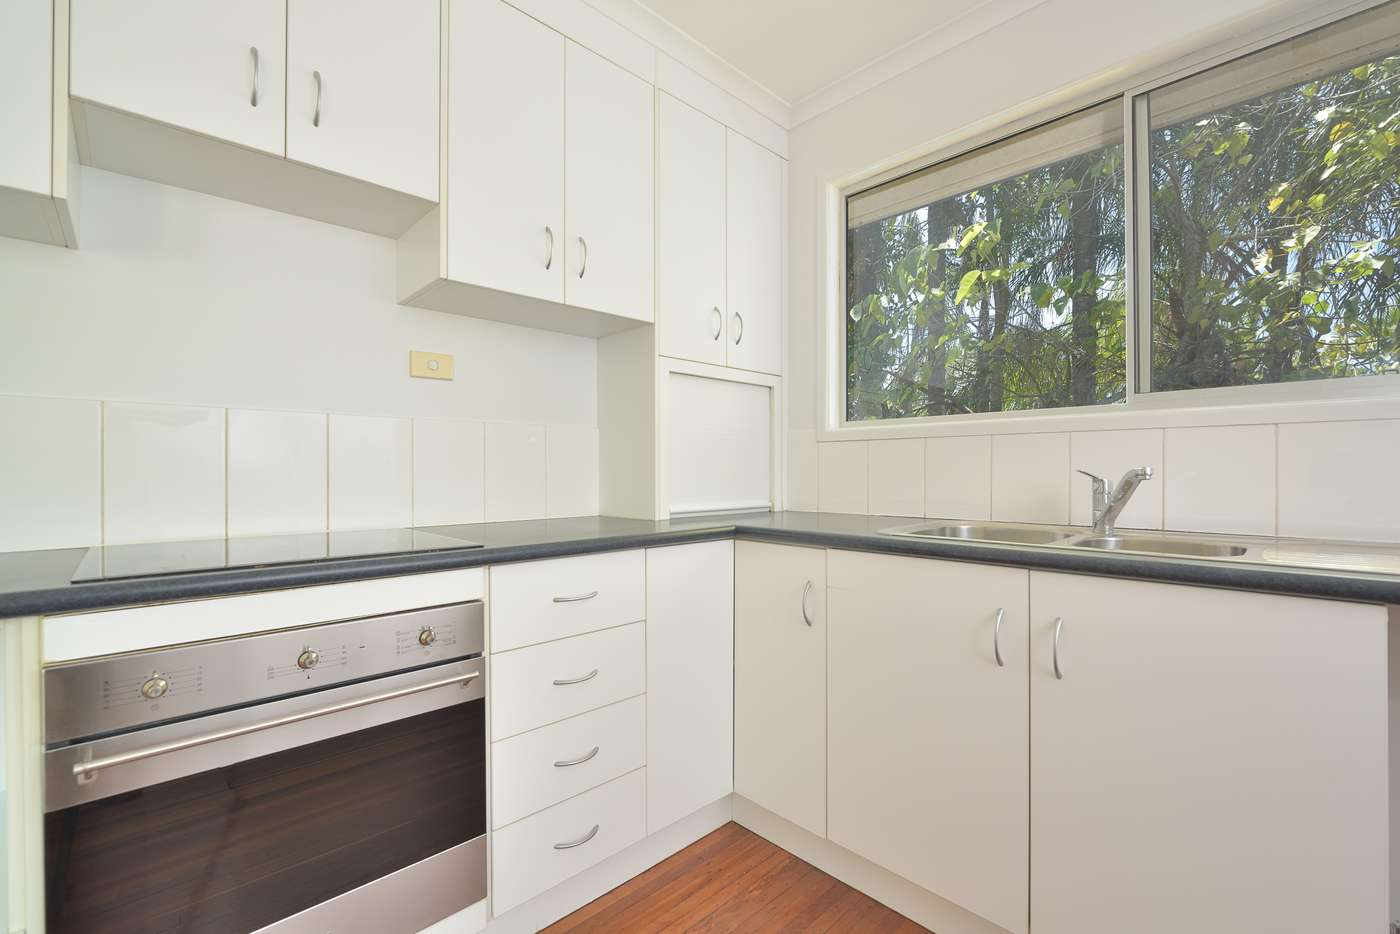 Sixth view of Homely house listing, 24 Bradford Road, Telina QLD 4680